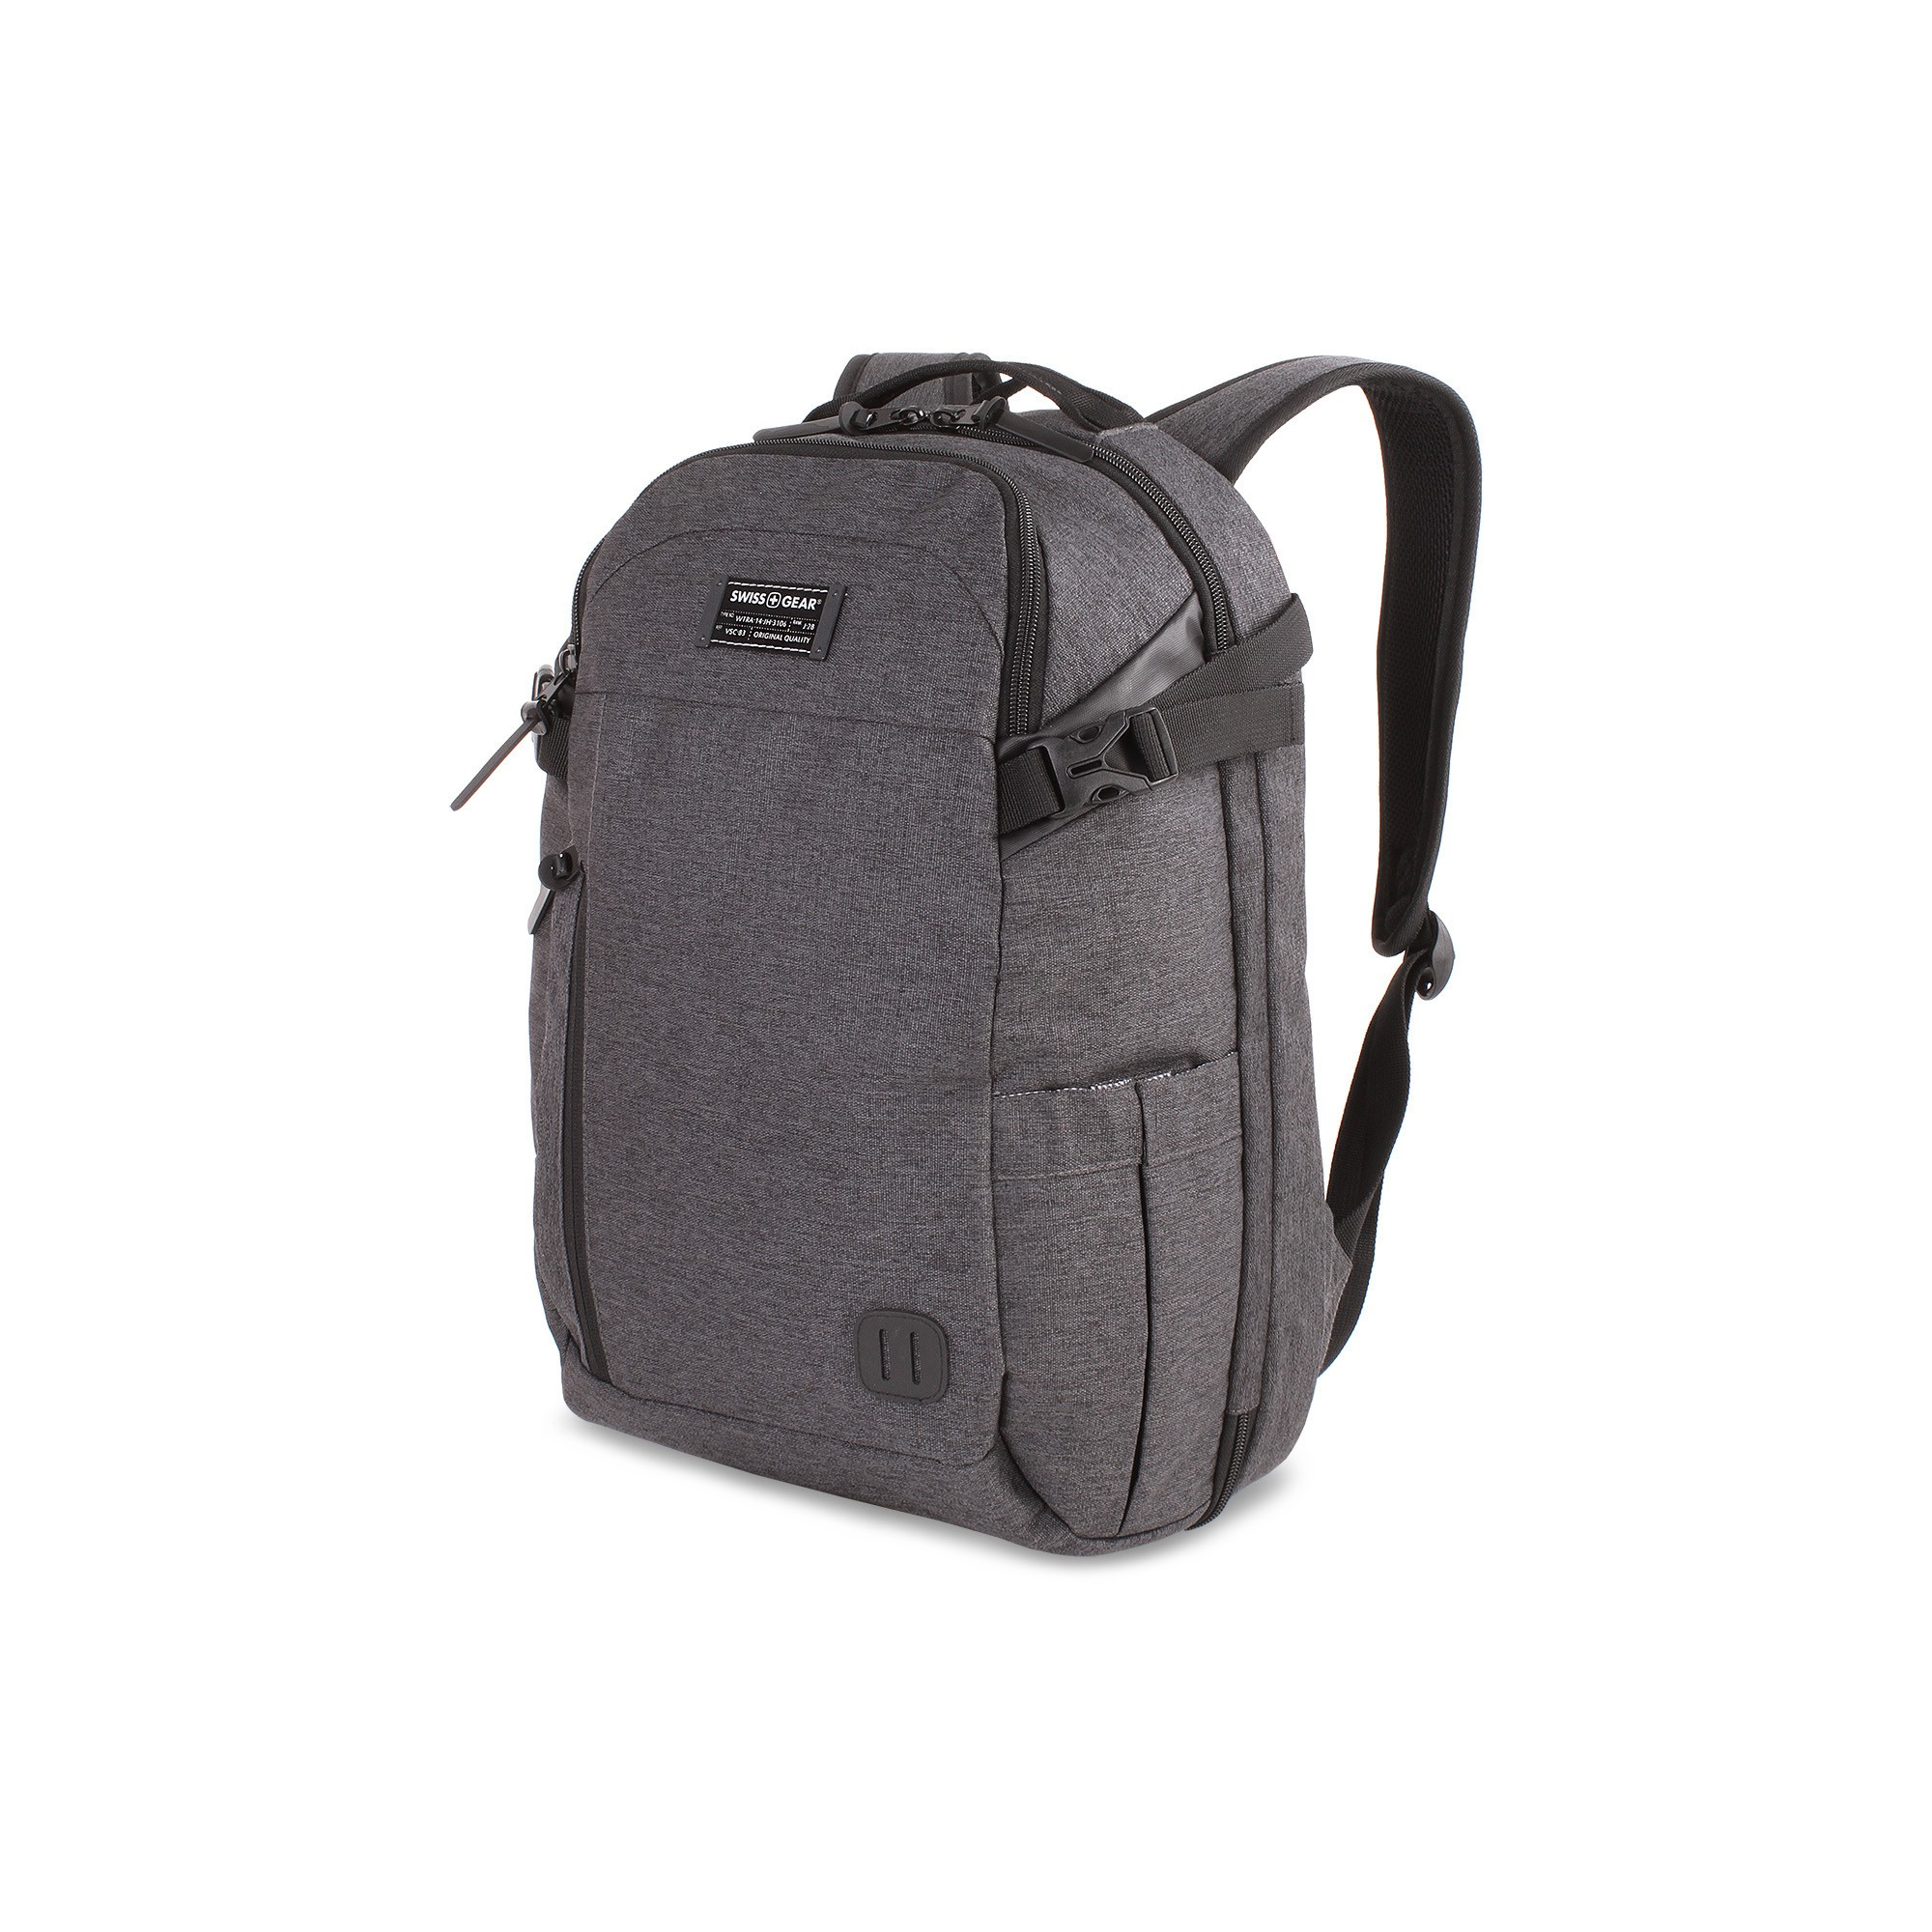 7ac5e4b0a1 SwissGear Getaway Collection Weekend Laptop Backpack